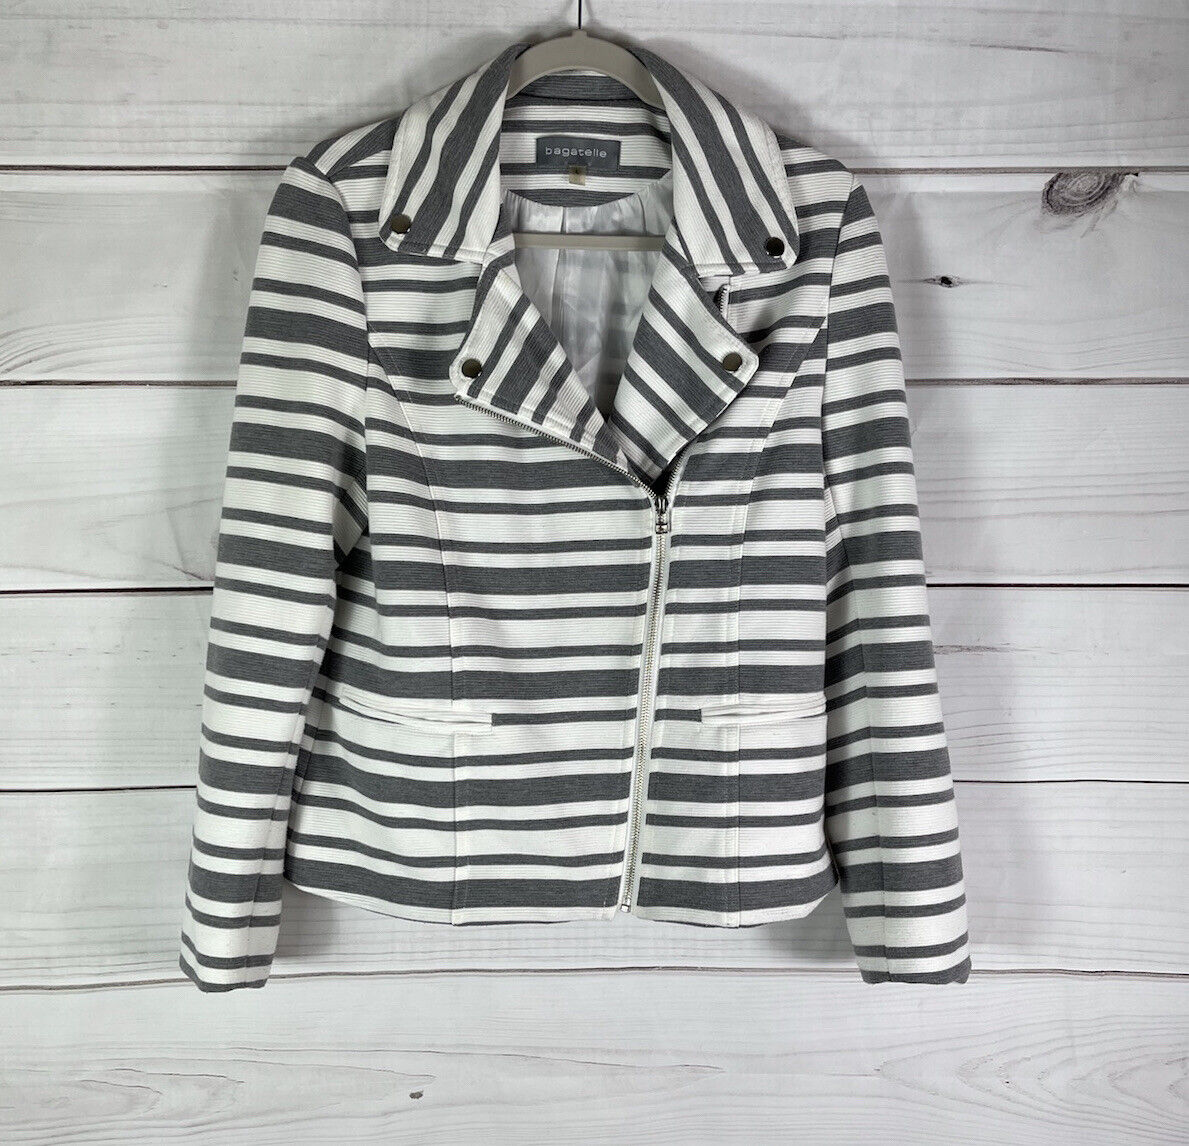 Bagatelle Striped Knit Moto Zip Up Jacket Gray White Textured Casual Lined Sz L